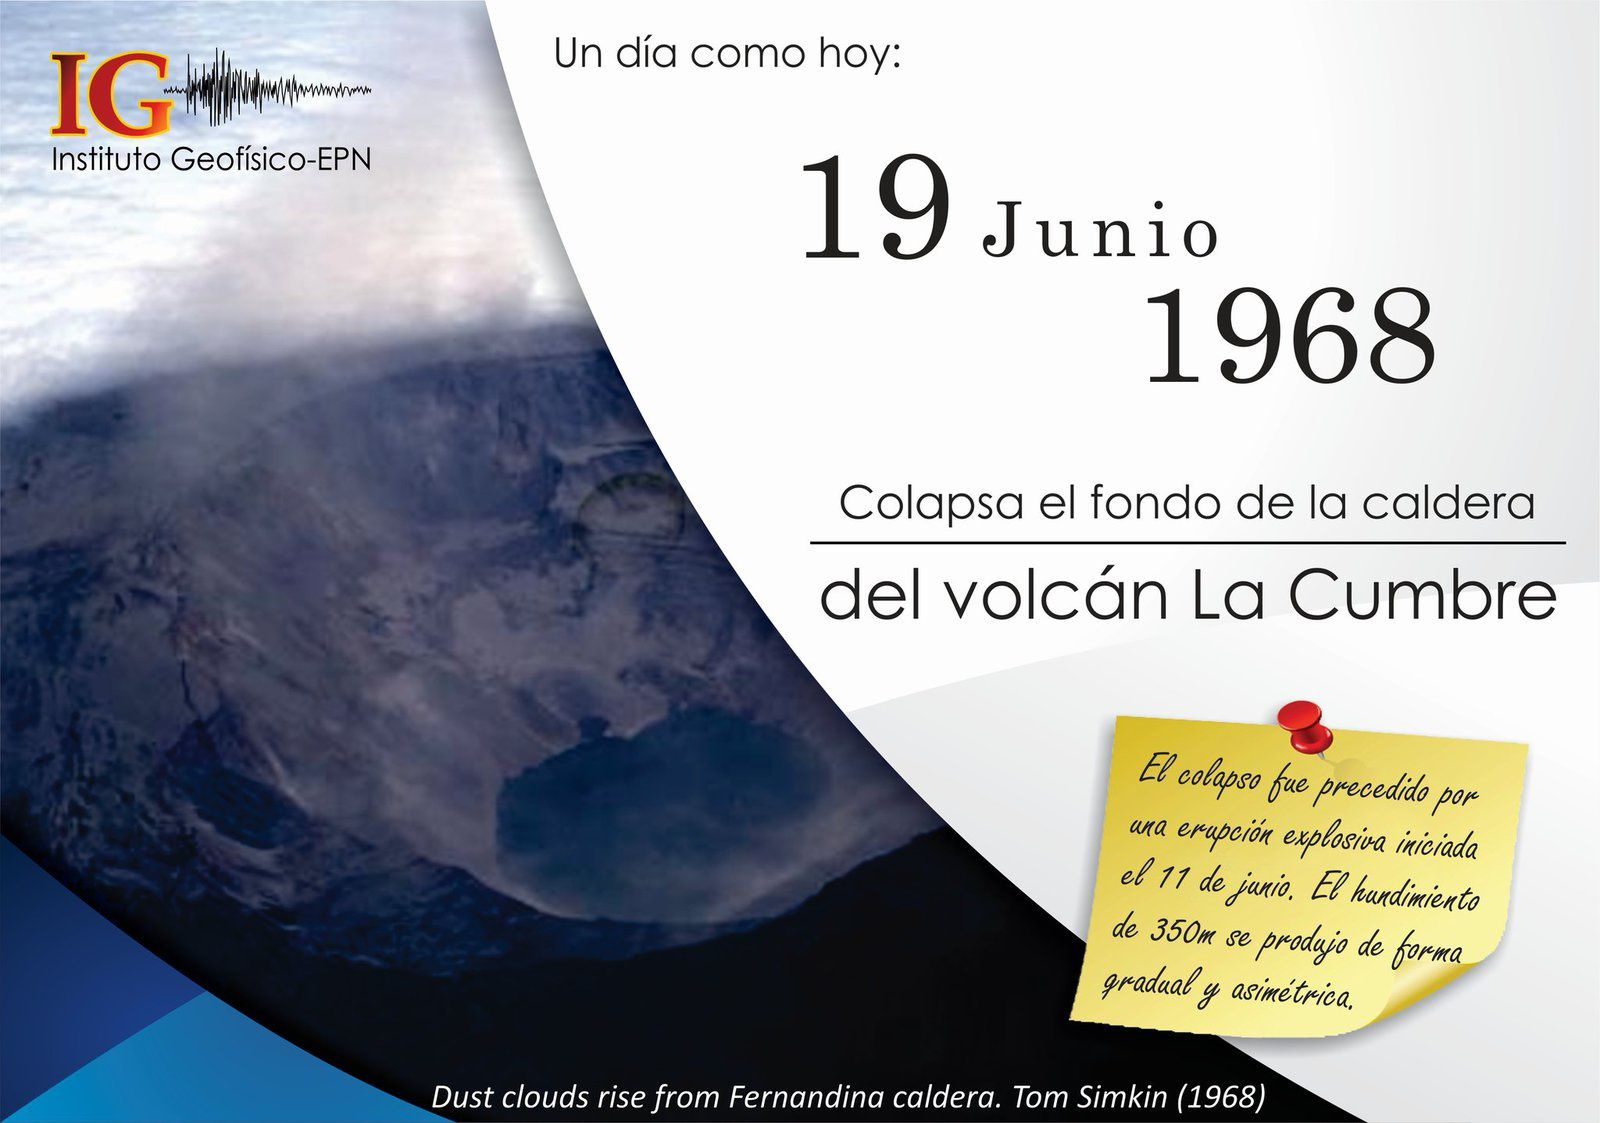 Fernandina - 19.06.1968 - Collapse of La Cumbre caldera - photo IGEPN